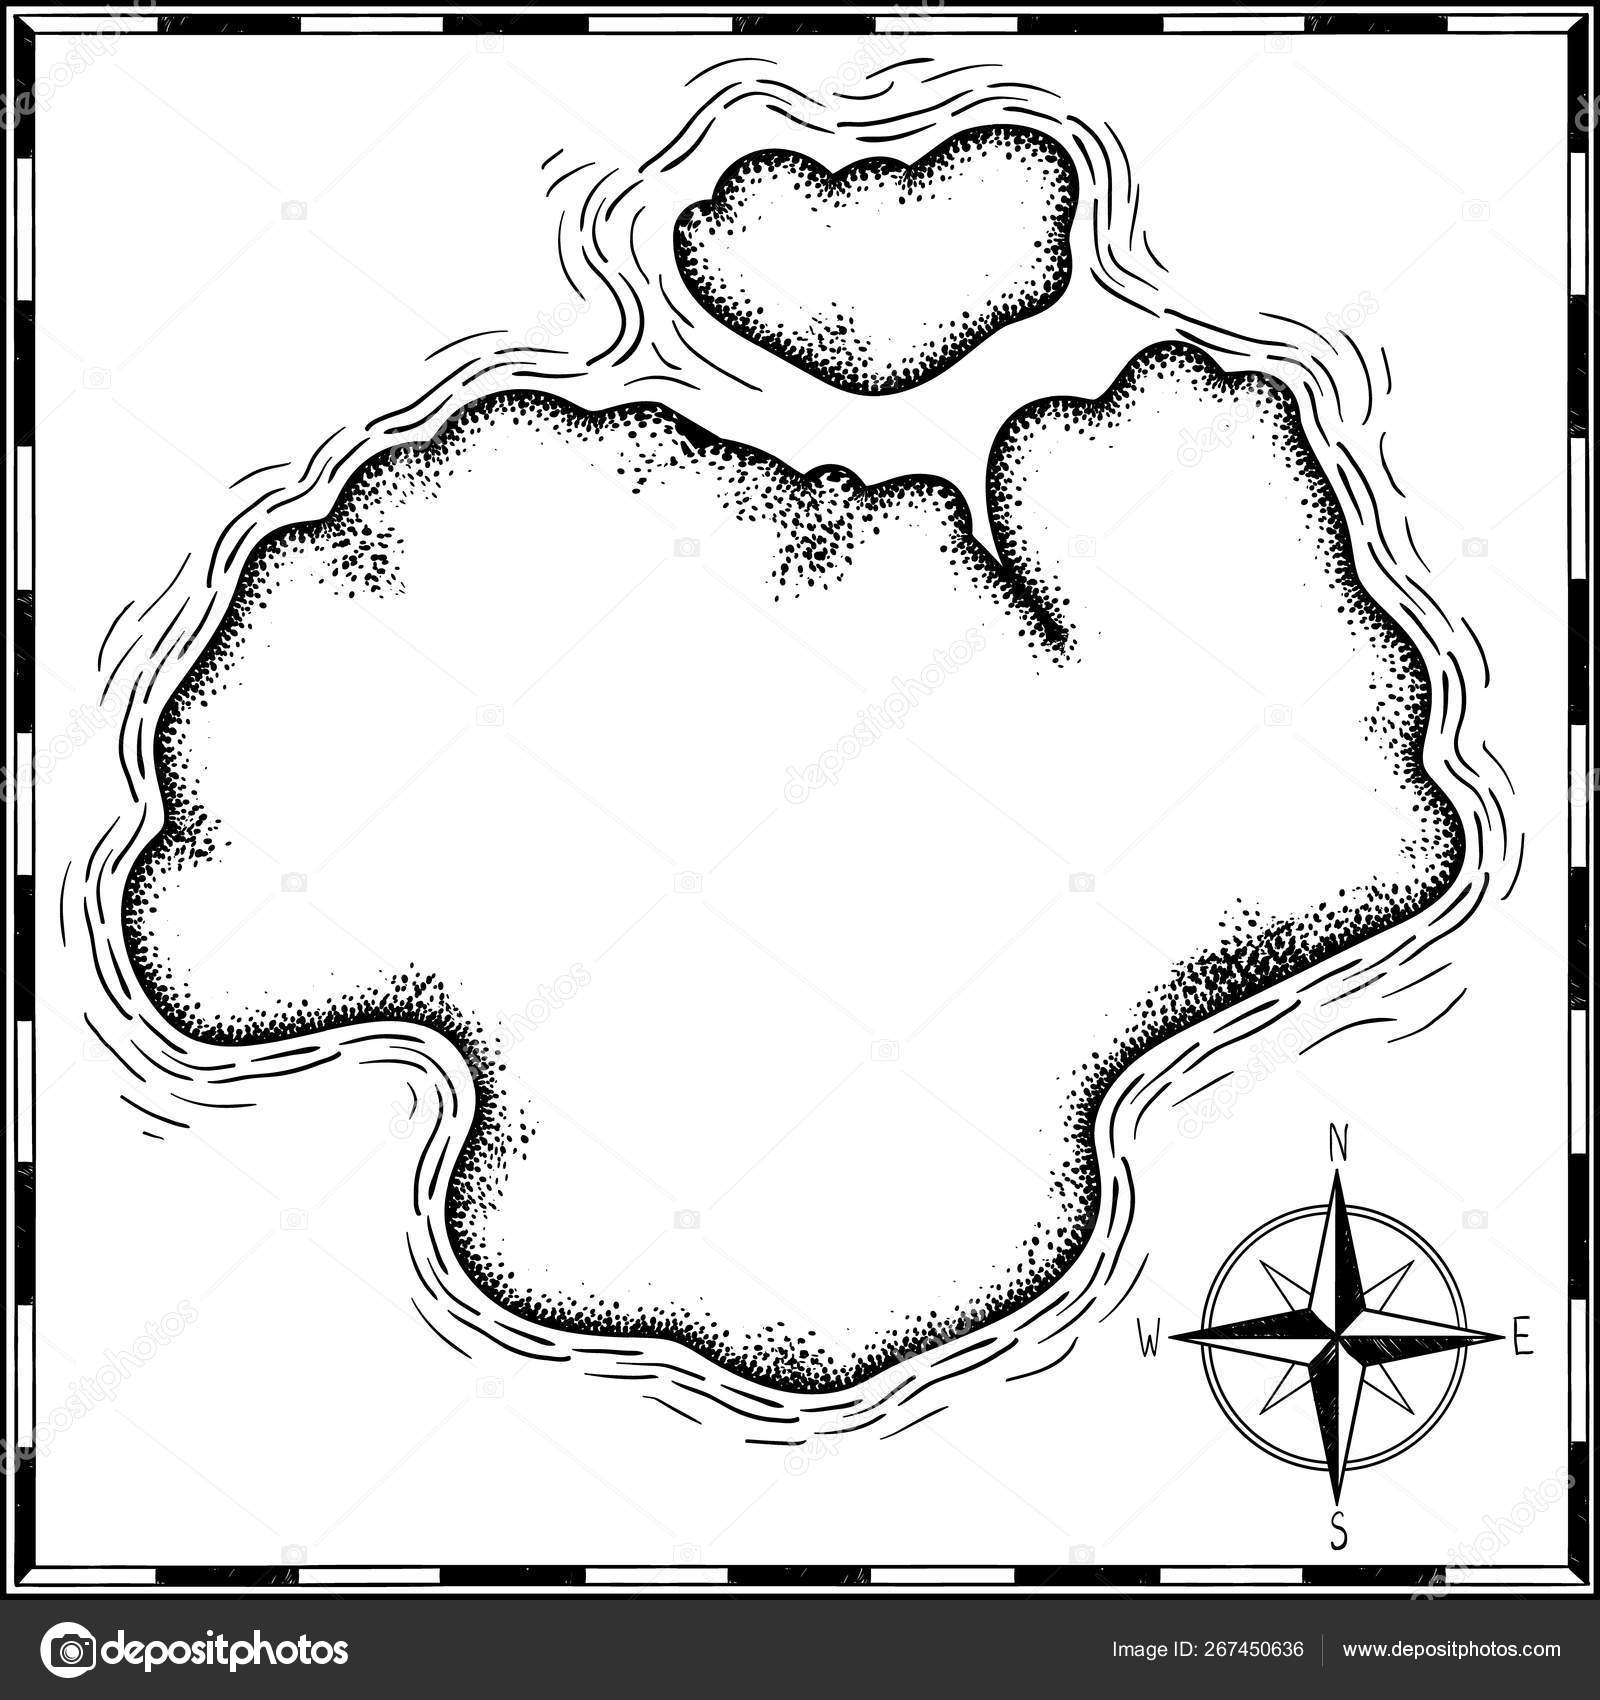 pirates treasure map hand drawn cartoon black ink isolated white stock vector c annaartbox 267450636 pirates treasure map hand drawn cartoon black ink isolated white stock vector c annaartbox 267450636